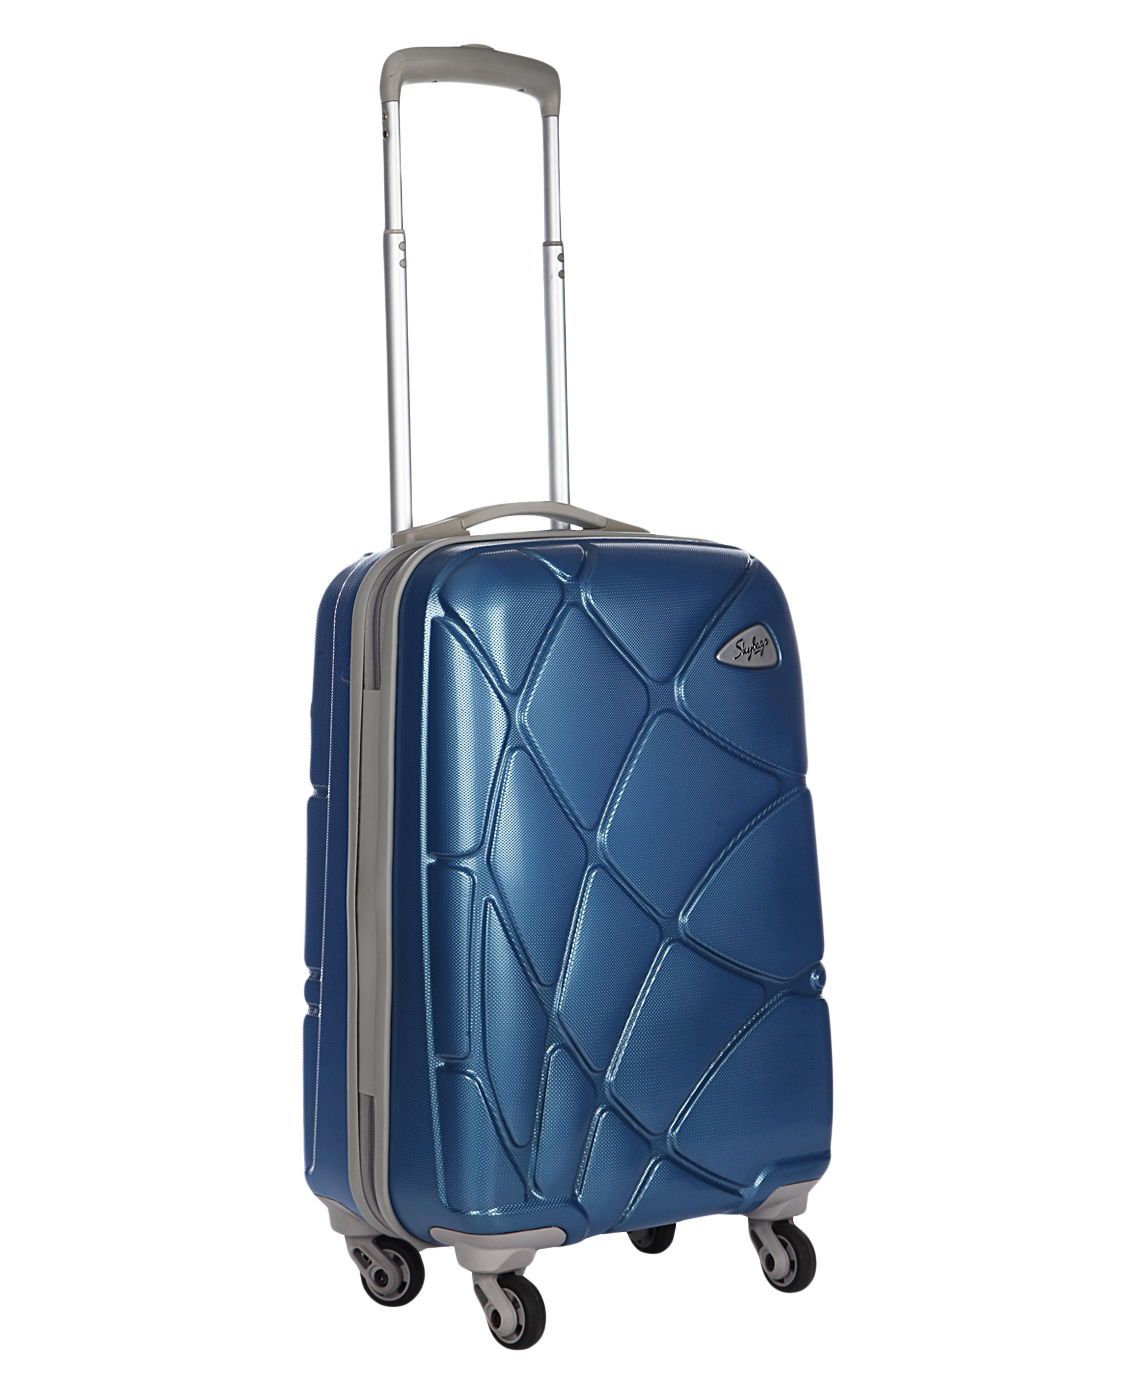 Strolley Suitcase Luggage PNG Transparent Image - Luggage PNG